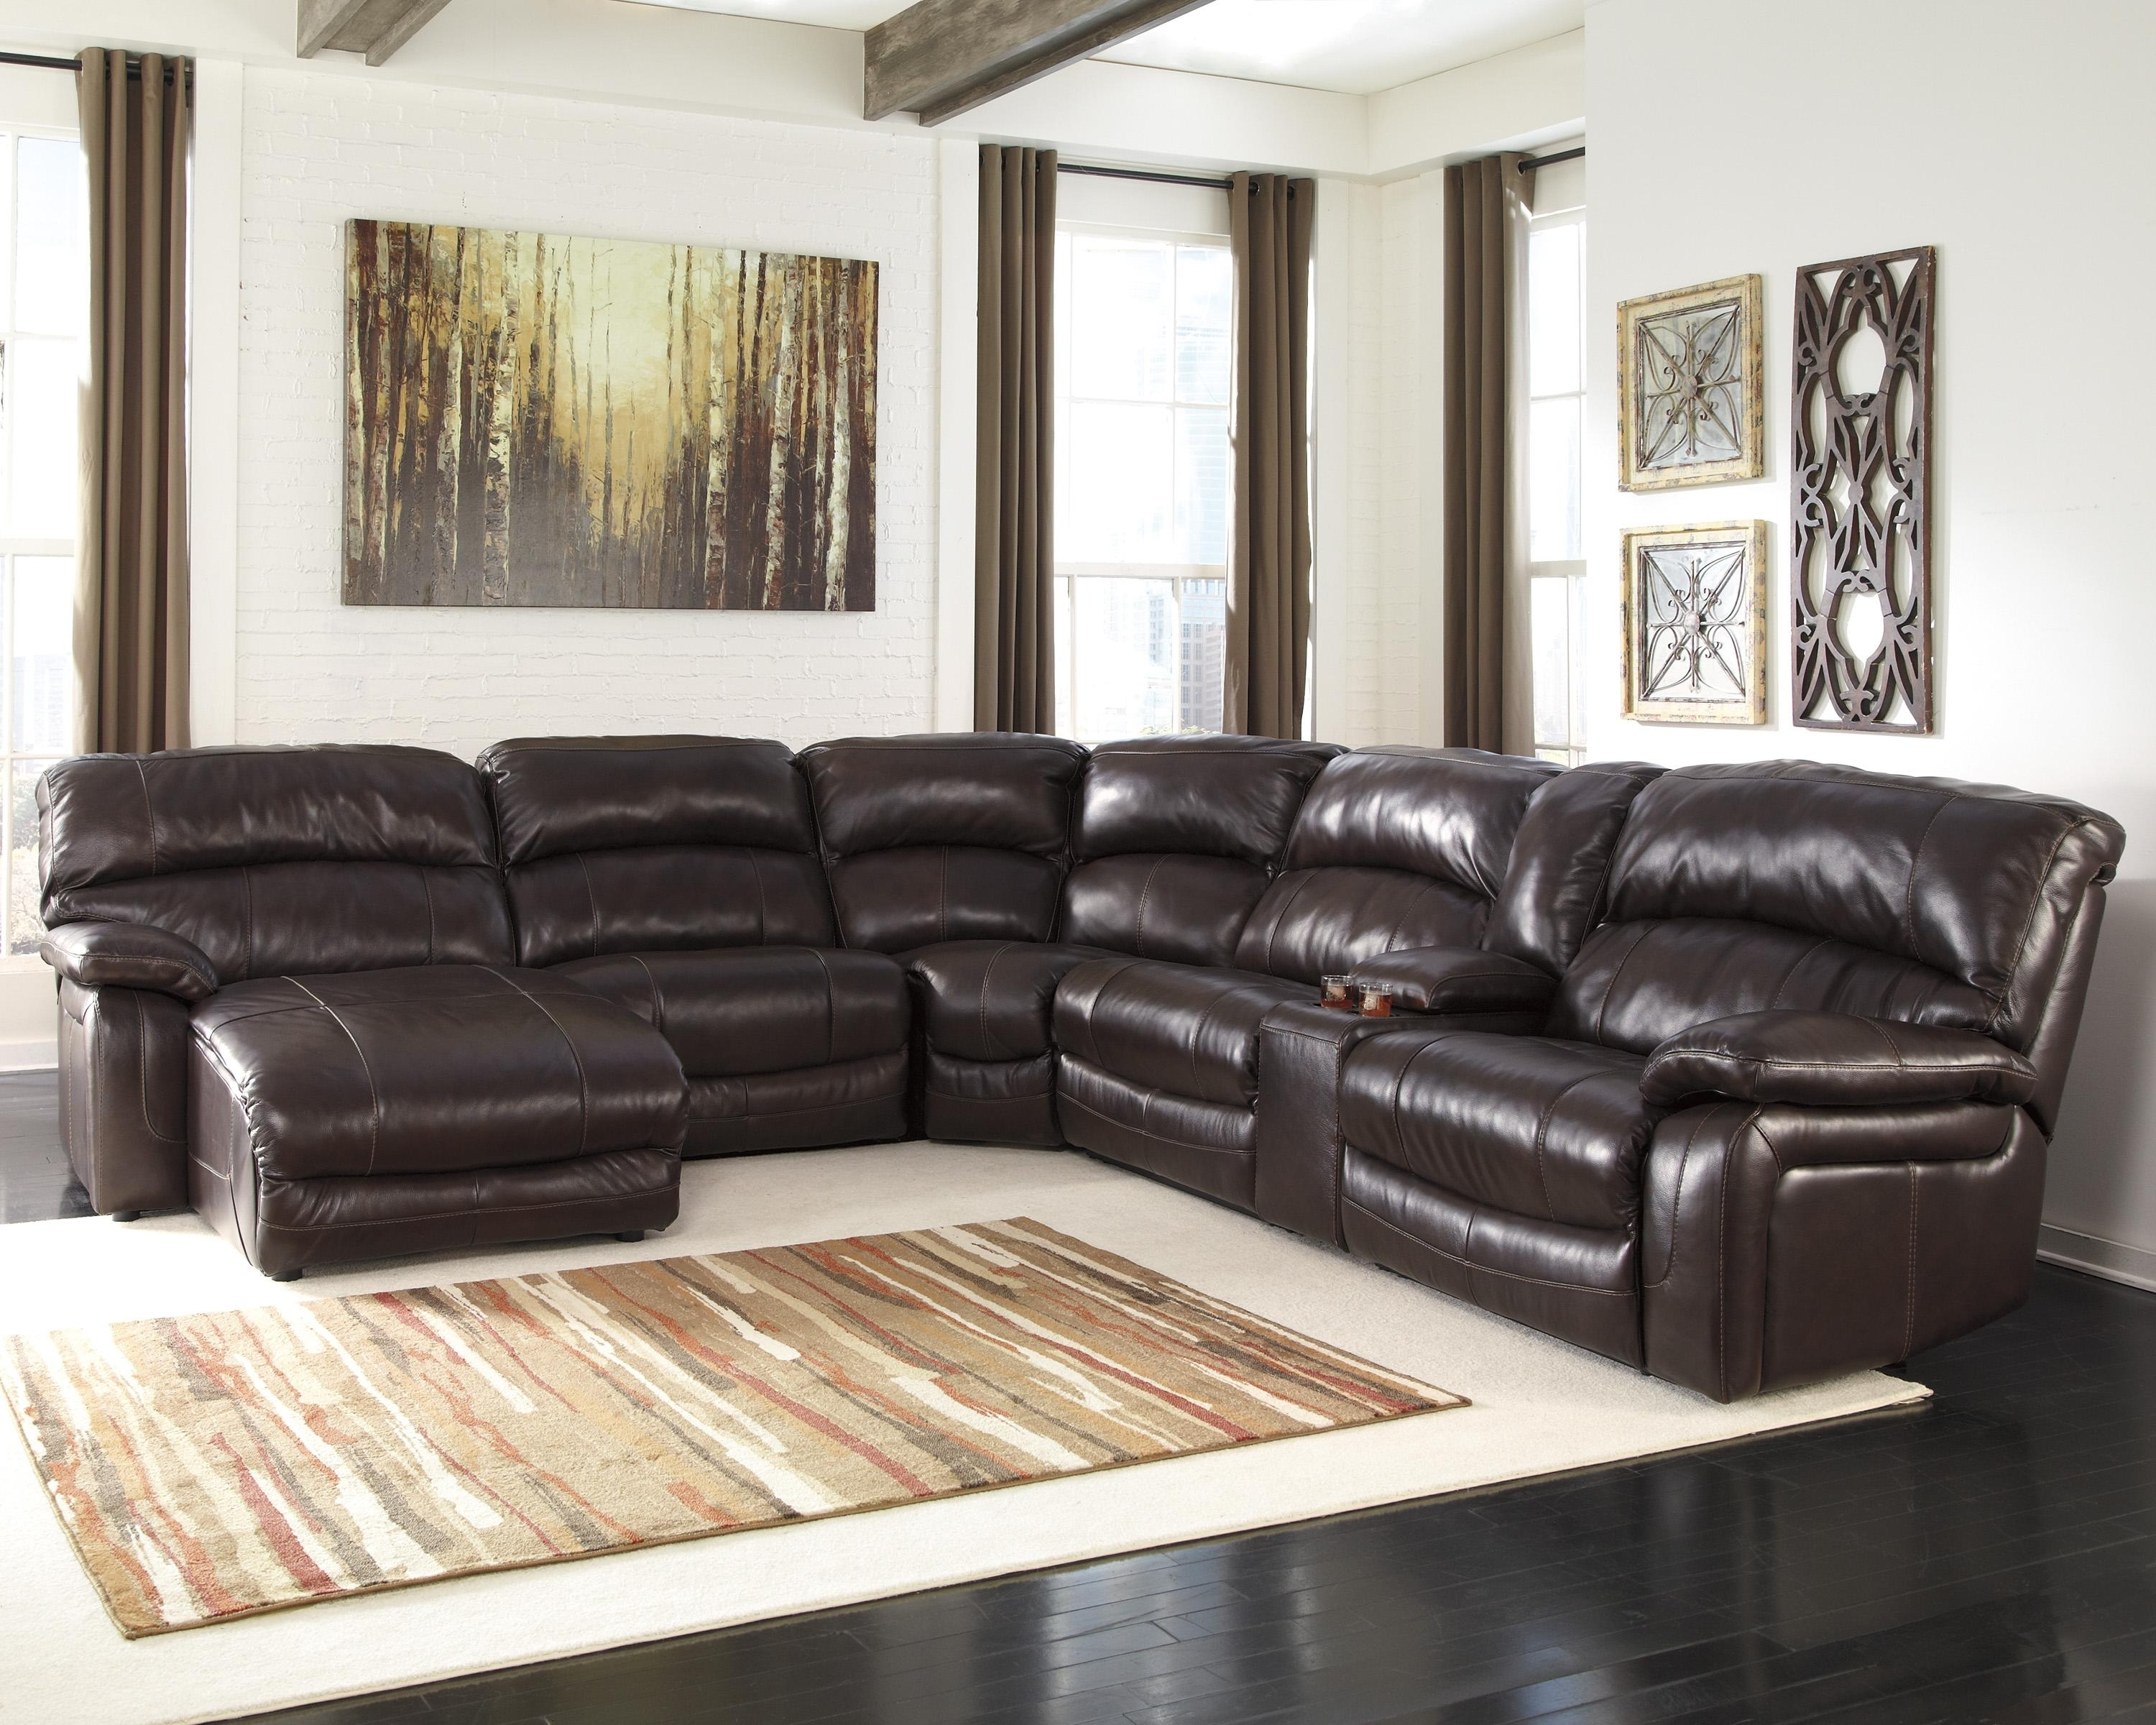 Signature Designashley Damacio – Dark Brown Reclining For Most Current Jackson Tn Sectional Sofas (View 15 of 20)